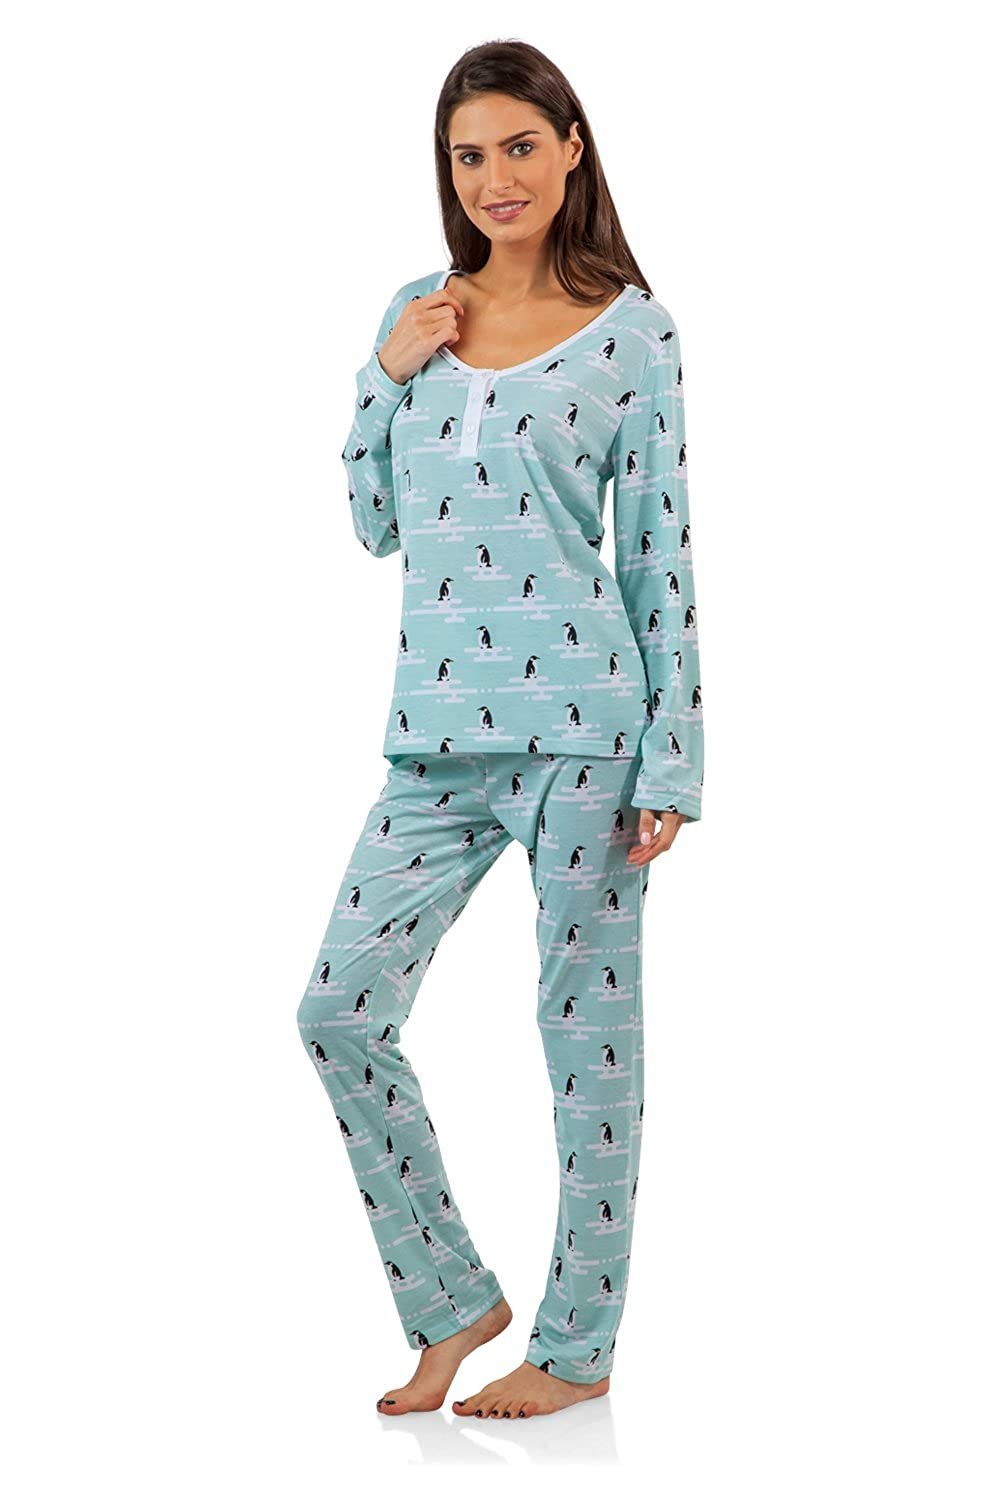 BHPJ By Bedhead Pajamas Women's Soft Knit Henley Shirt Pajama Set BHPJ 10046